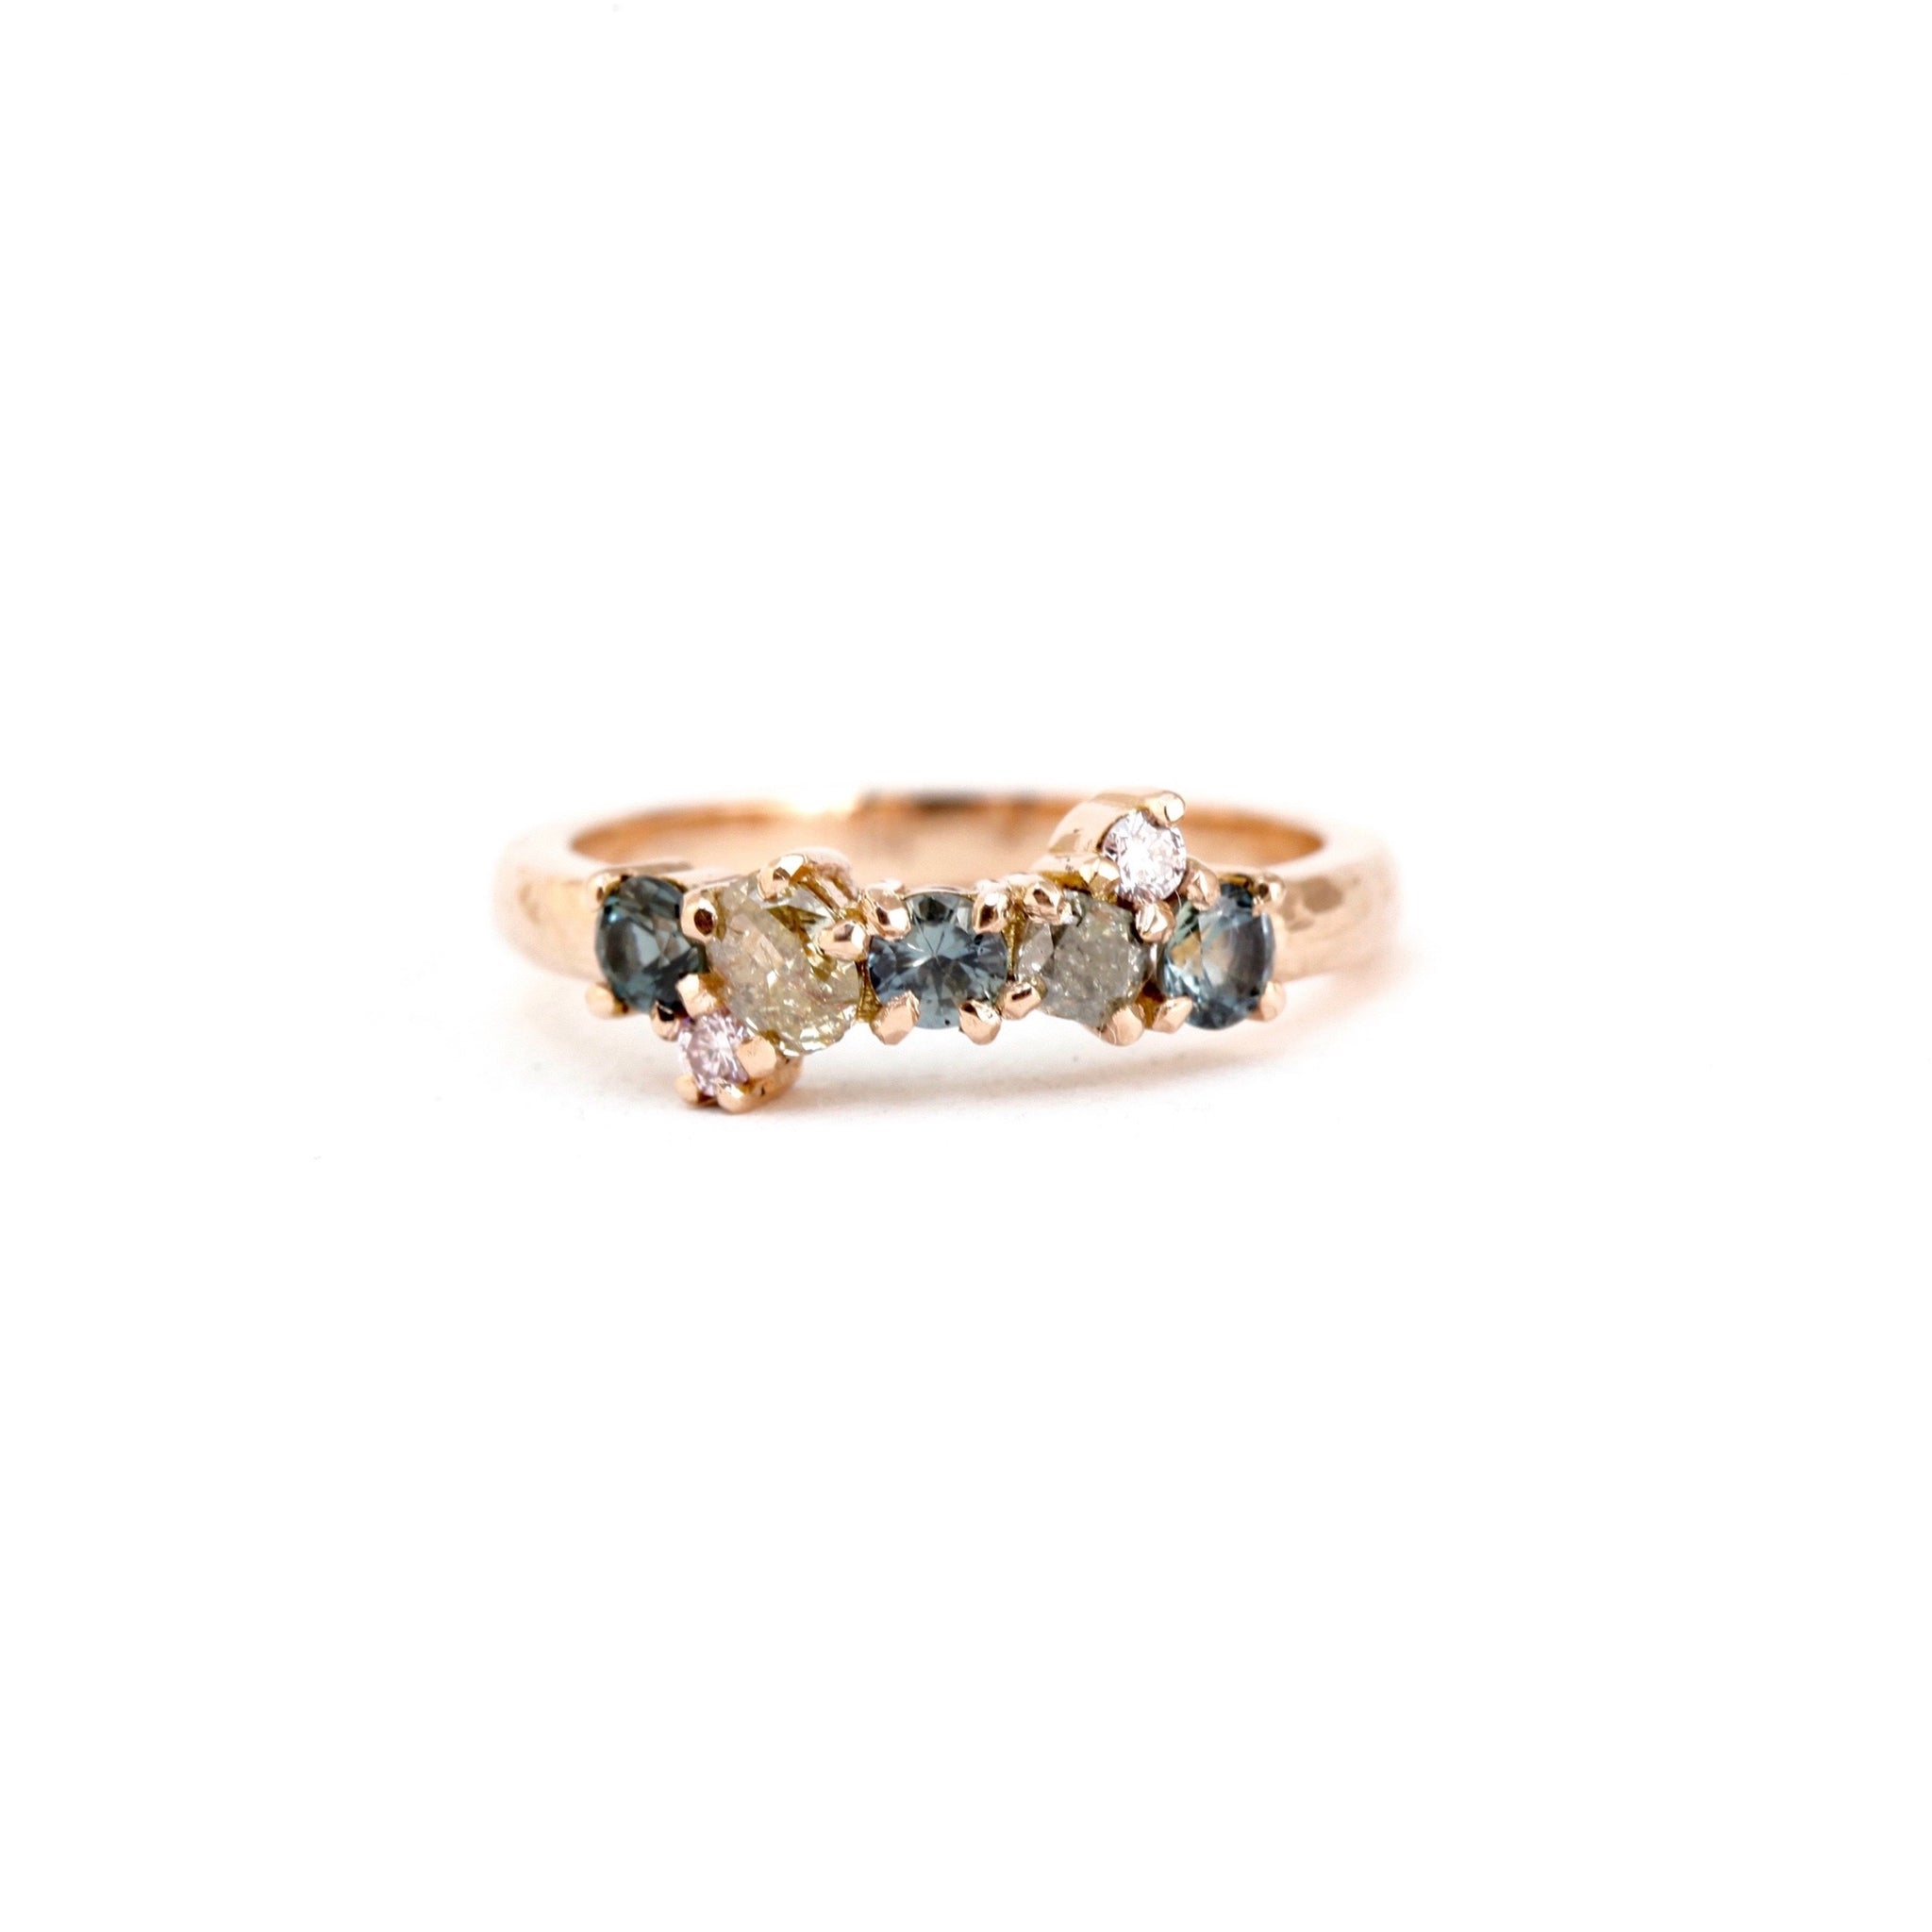 Australian sapphire and diamond rose gold wedding band.